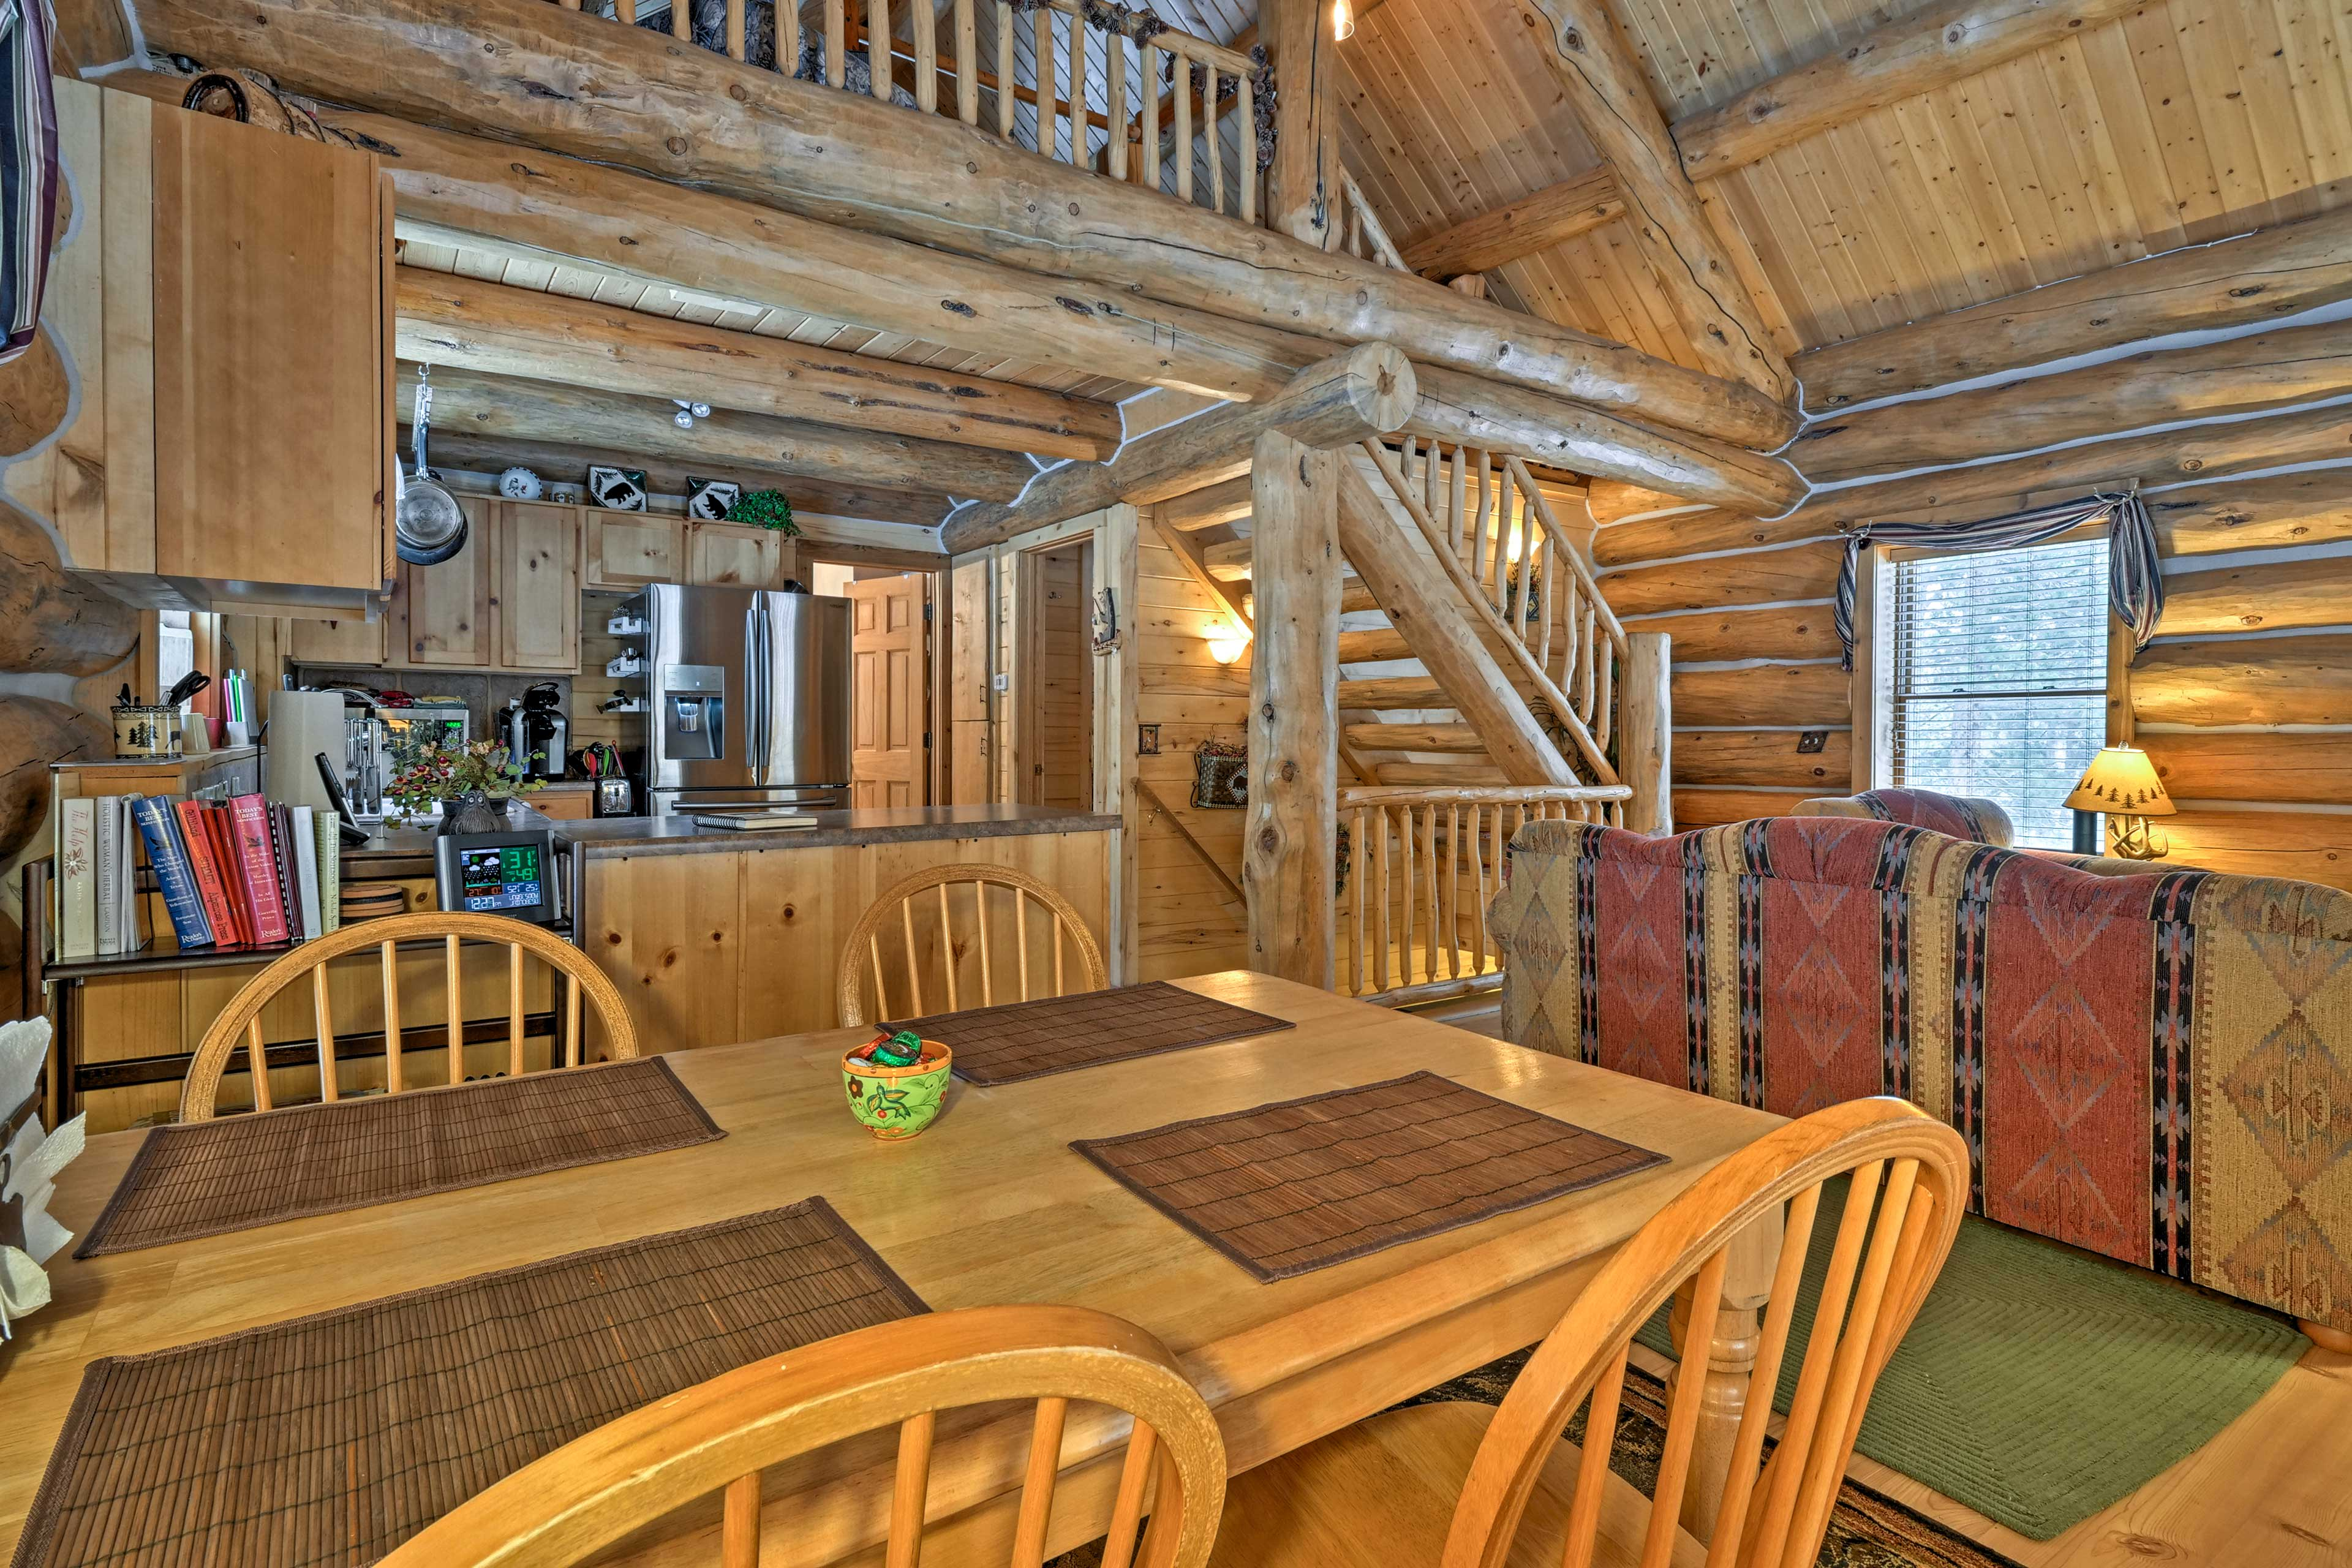 1,470 square feet of space is framed by wood beams and natural log structures.